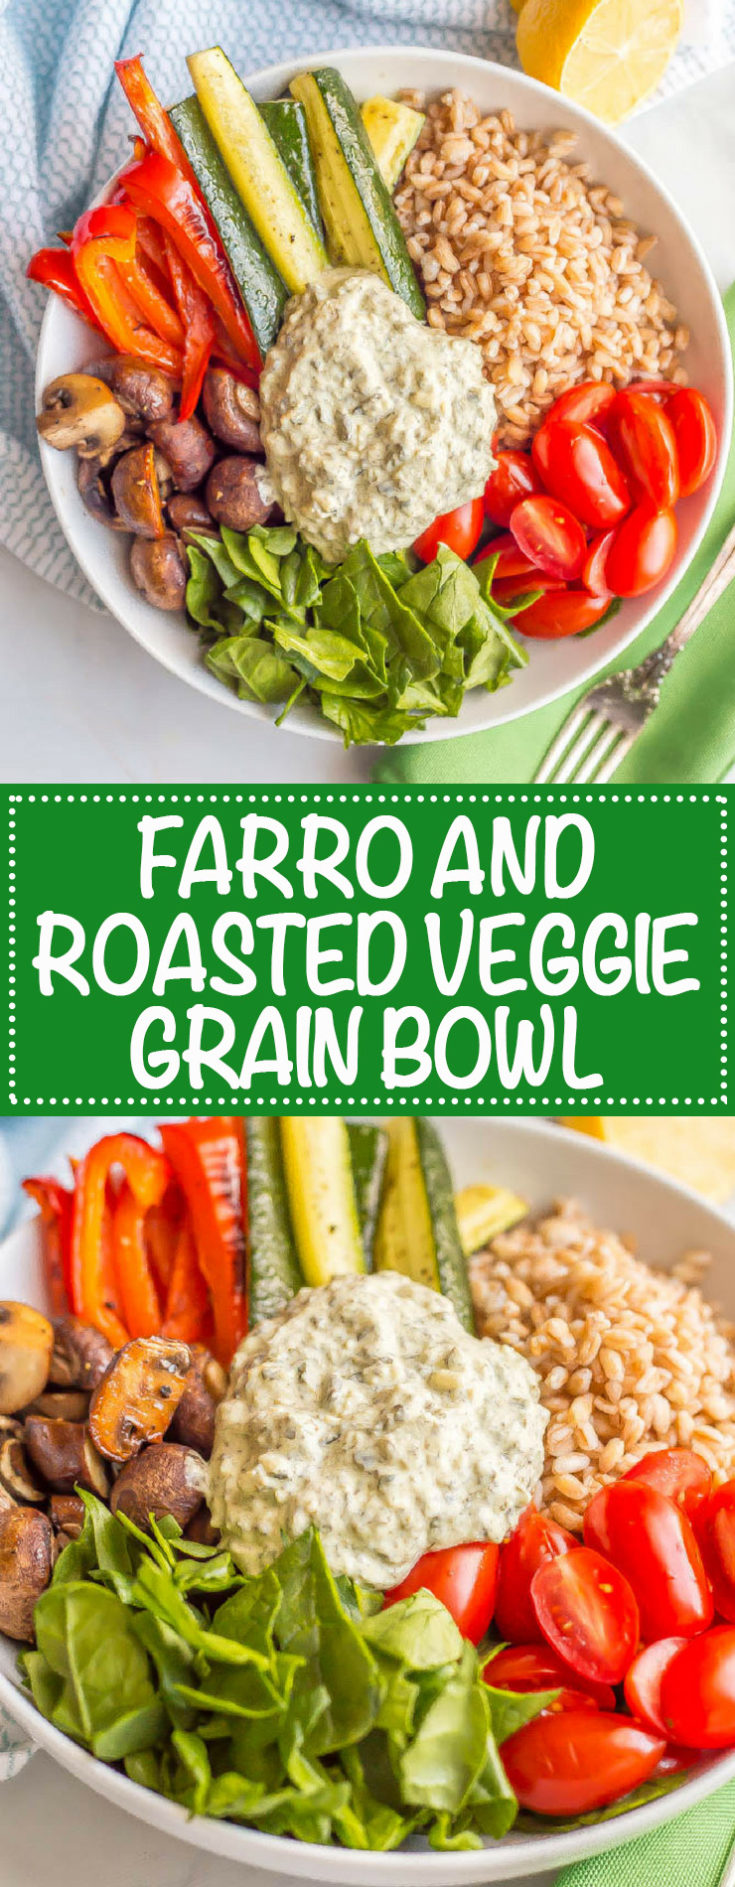 Farro and roasted vegetable grain bowl is a healthy vegetarian lunch or light dinner loaded with whole grains, roasted and fresh veggies and topped with a creamy spinach and kale dip.